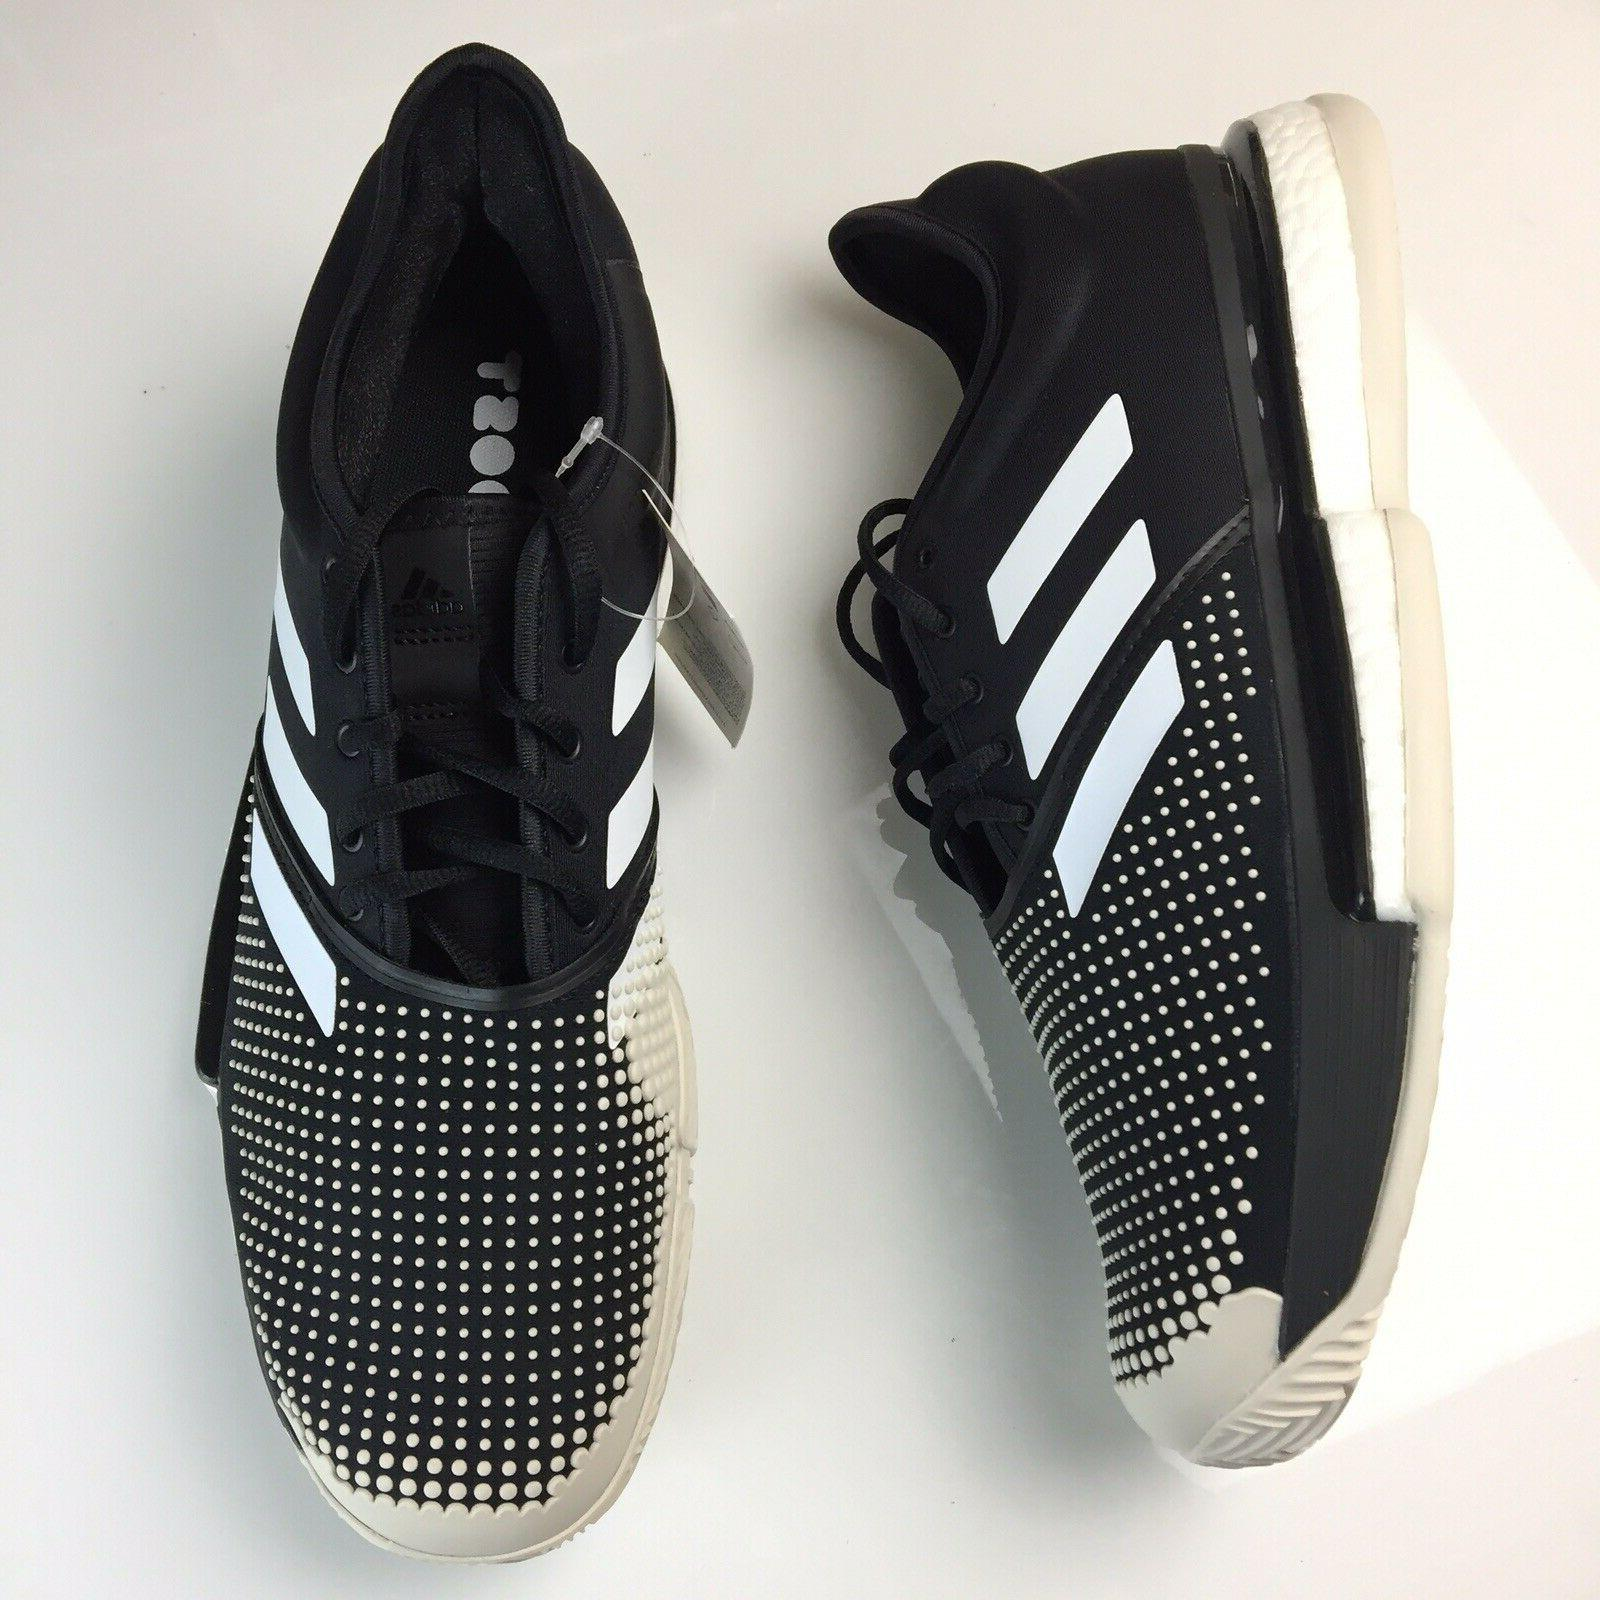 solecourt boost clay tennis shoes black white